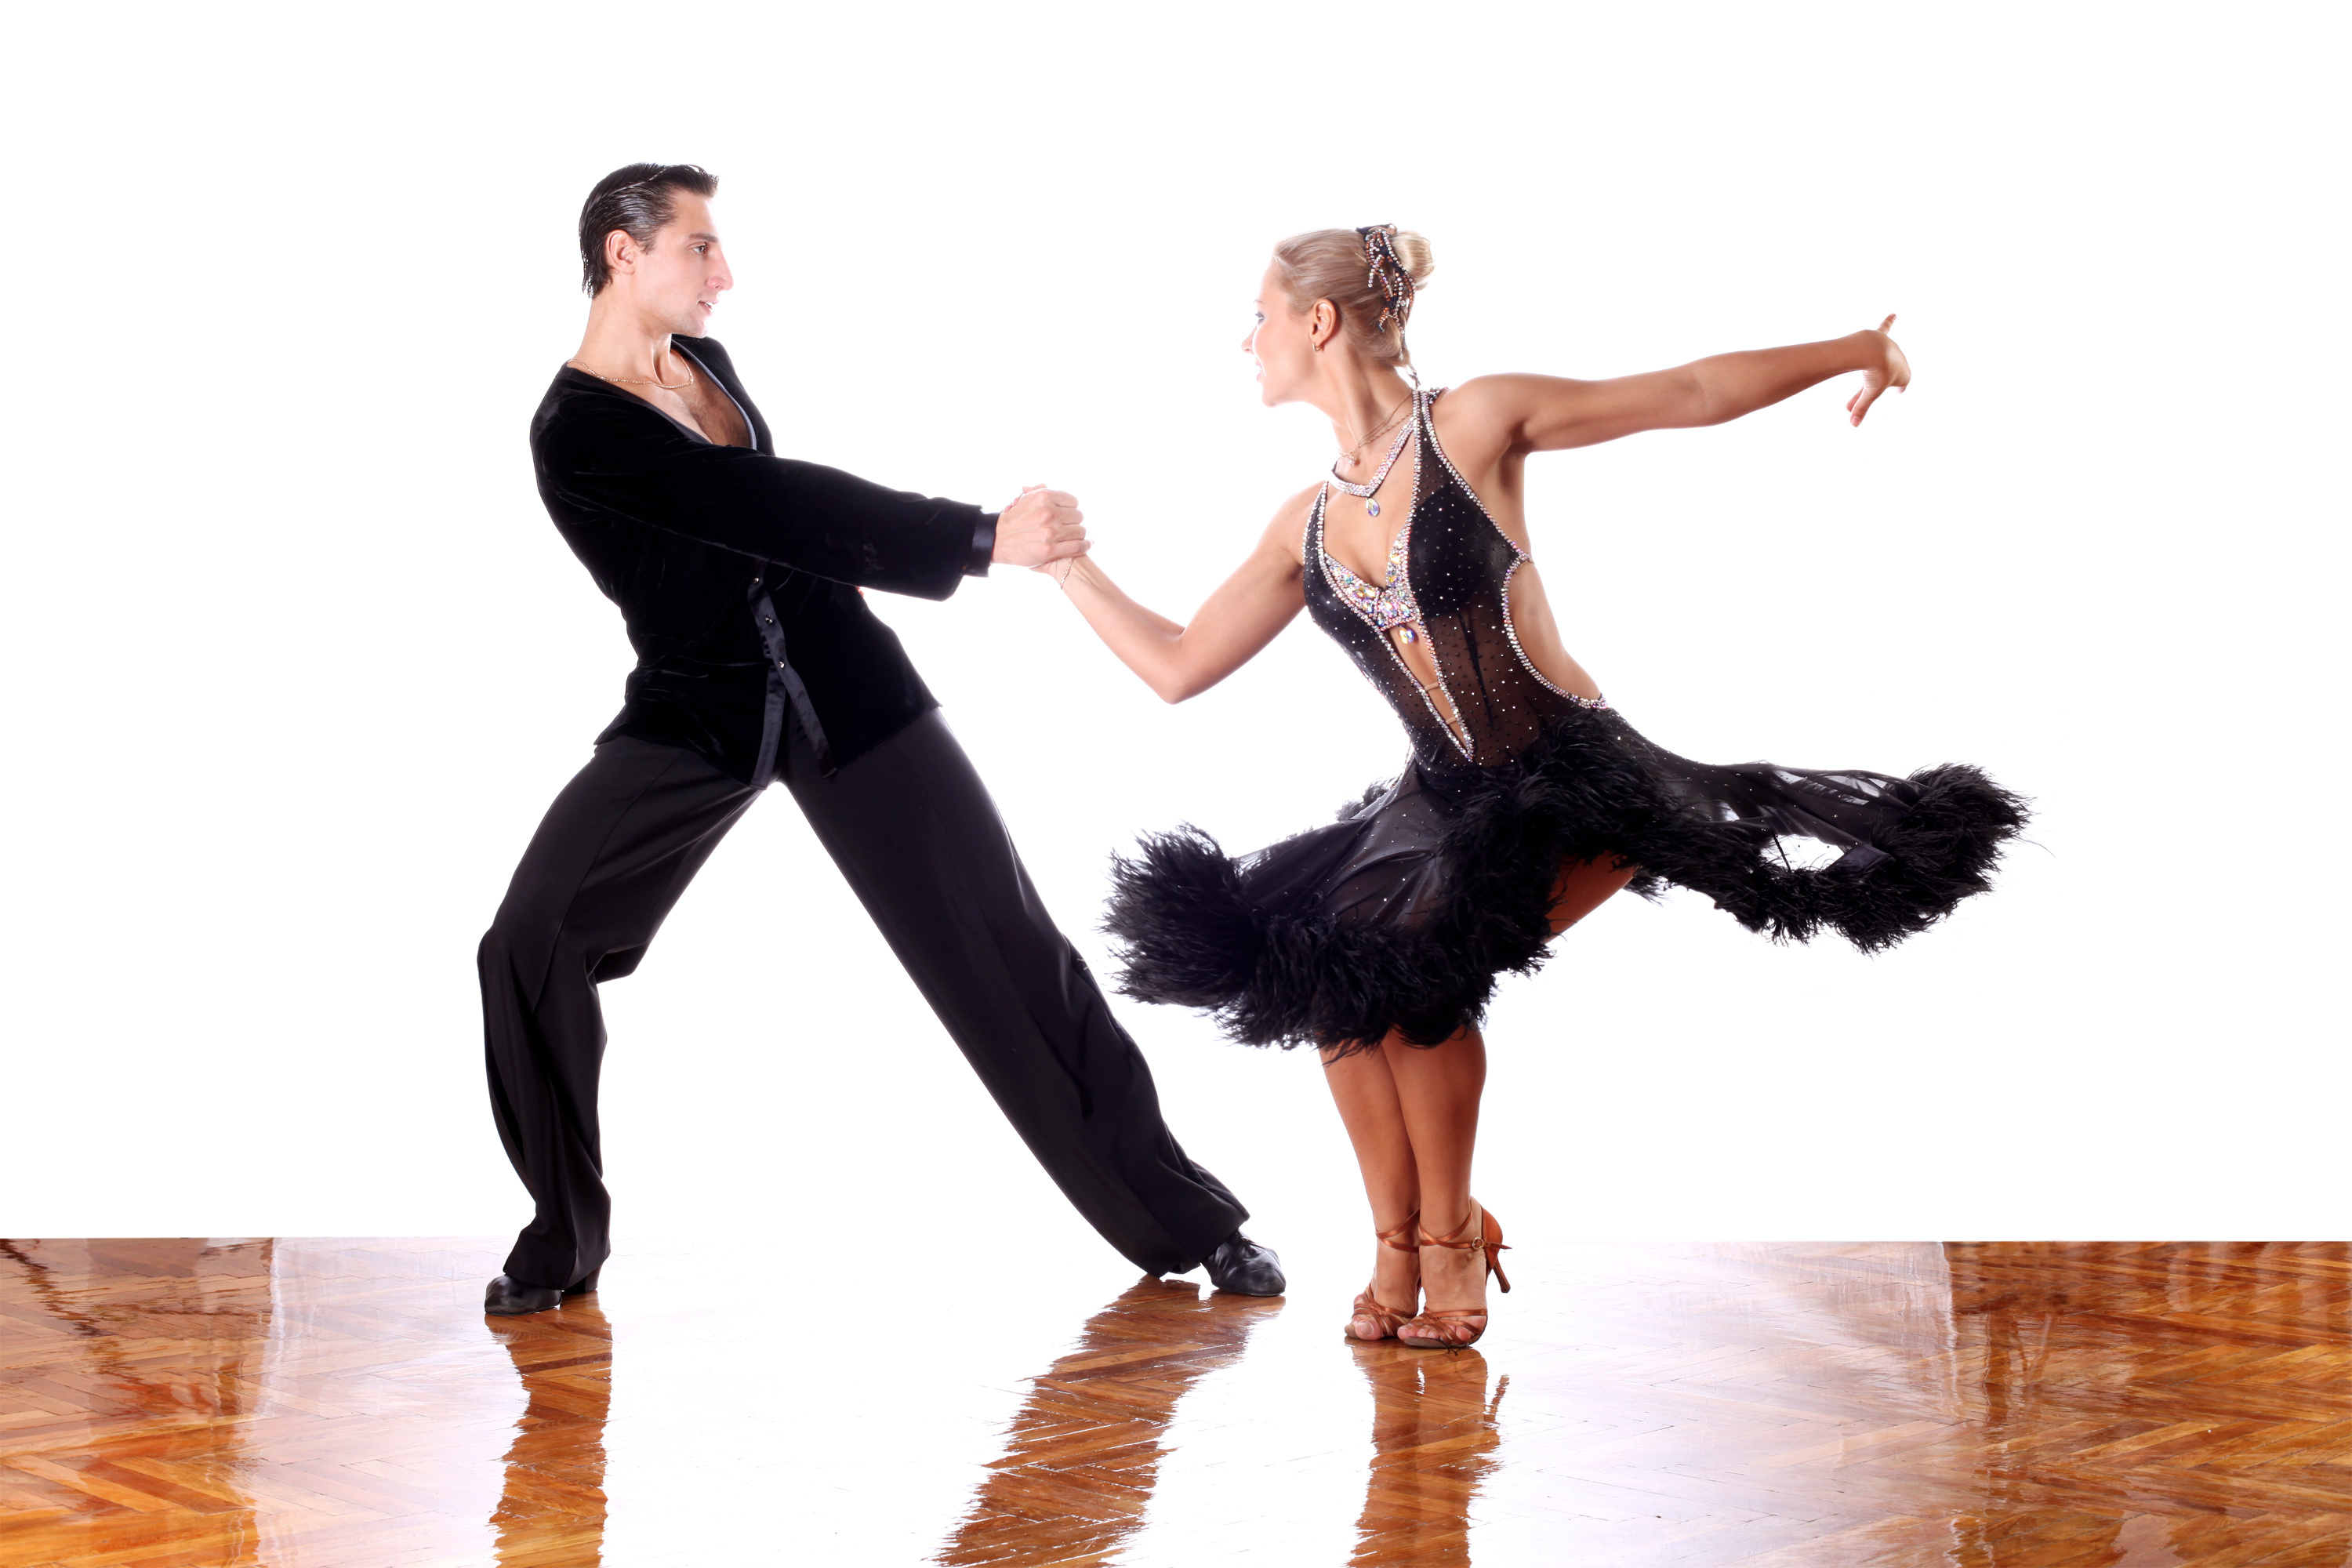 Latin Dances Wallpapers High Quality | Download Free